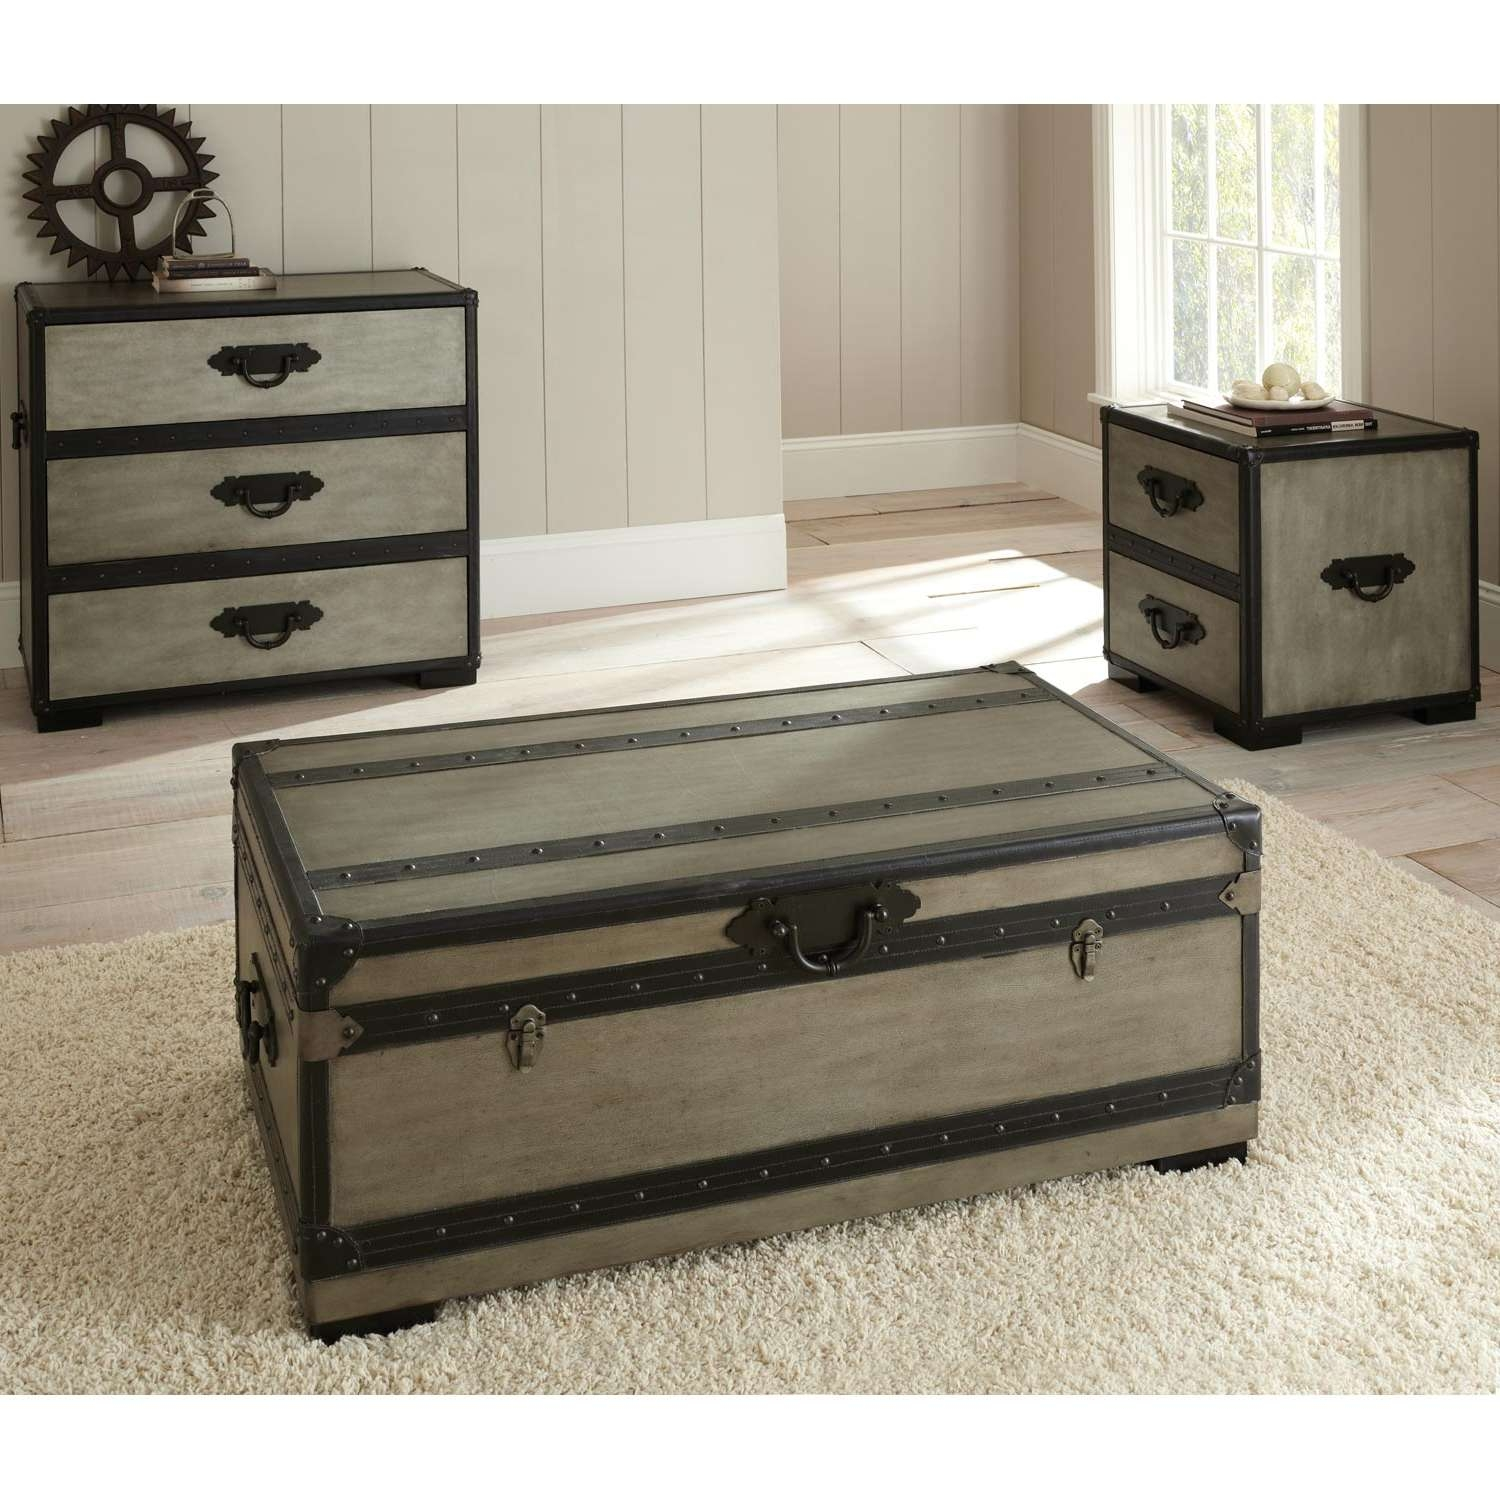 Most Popular Dark Wood Chest Coffee Tables In Coffee Table : Coffee Table Trunk On Wheels End Table With Blanket (View 14 of 20)